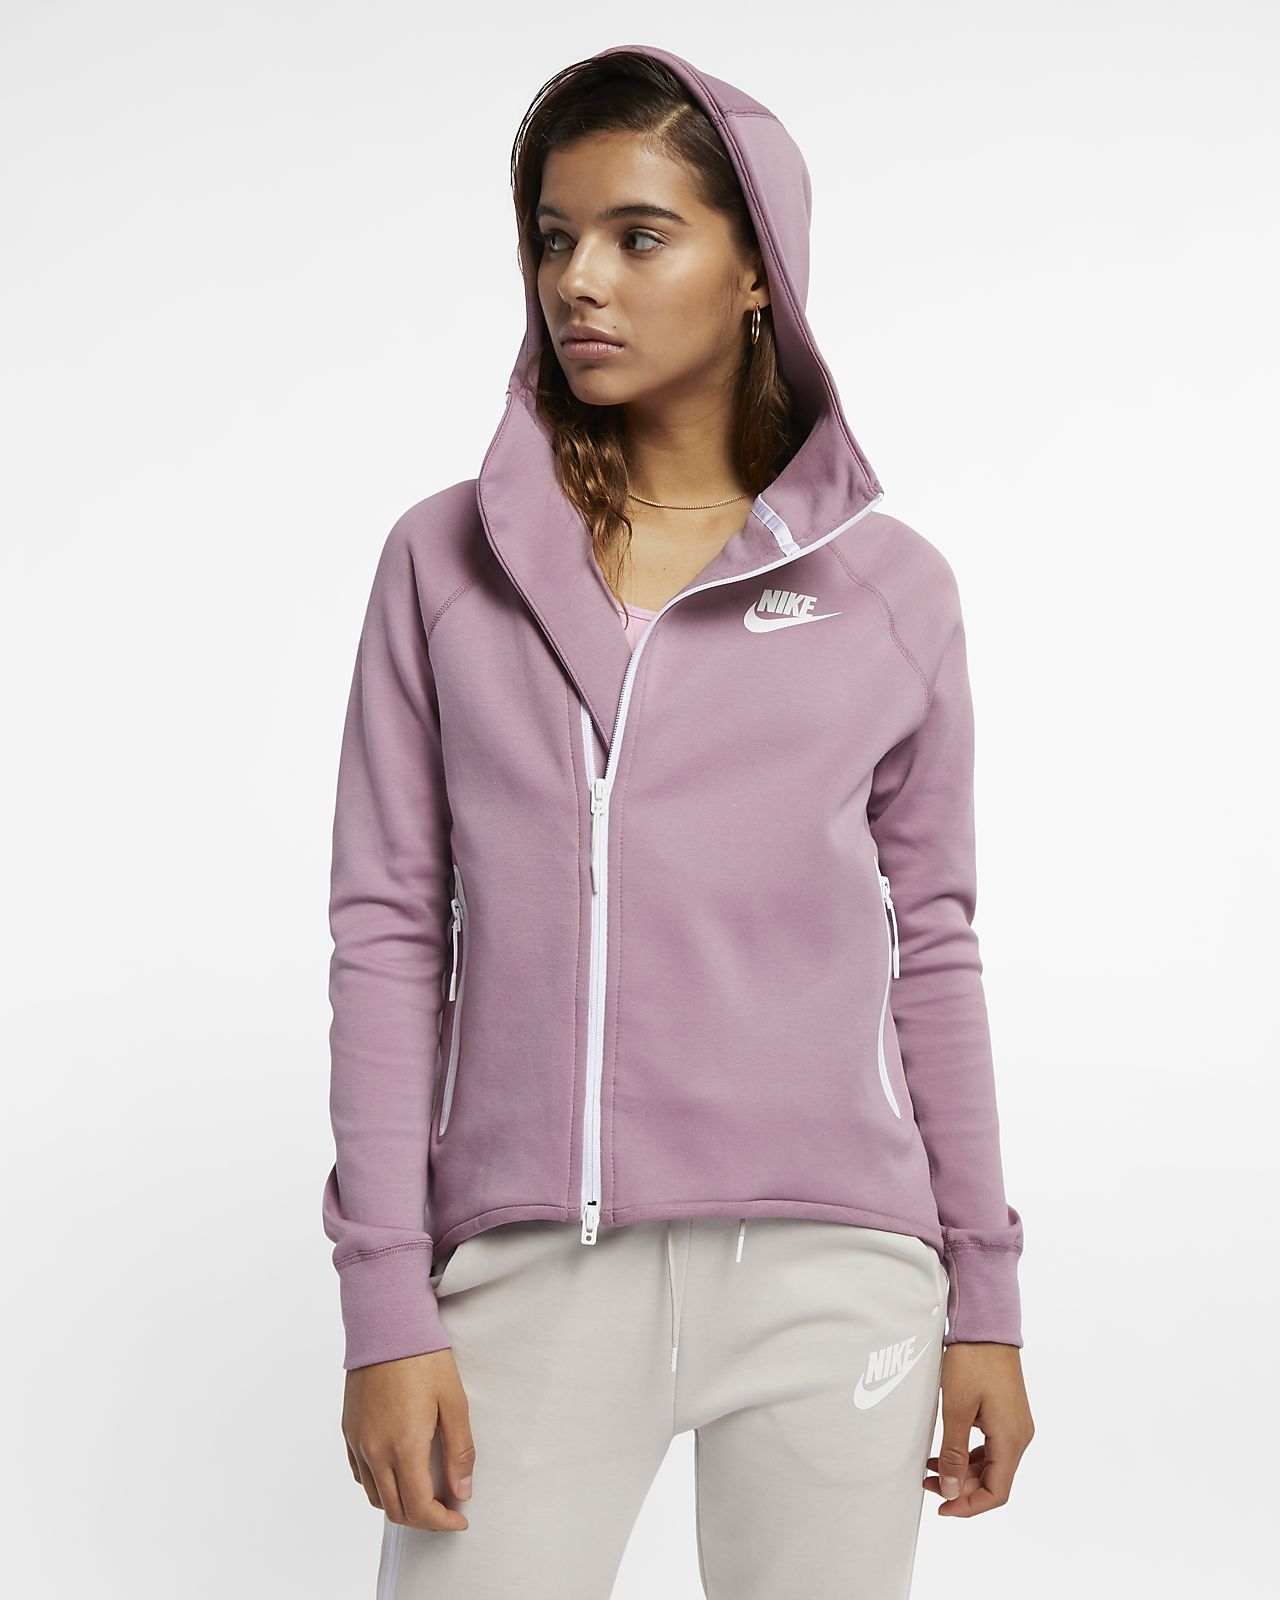 95899fec4ce0 Nike Sportswear Tech Fleece Women s Full-Zip Cape. Nike.com GB